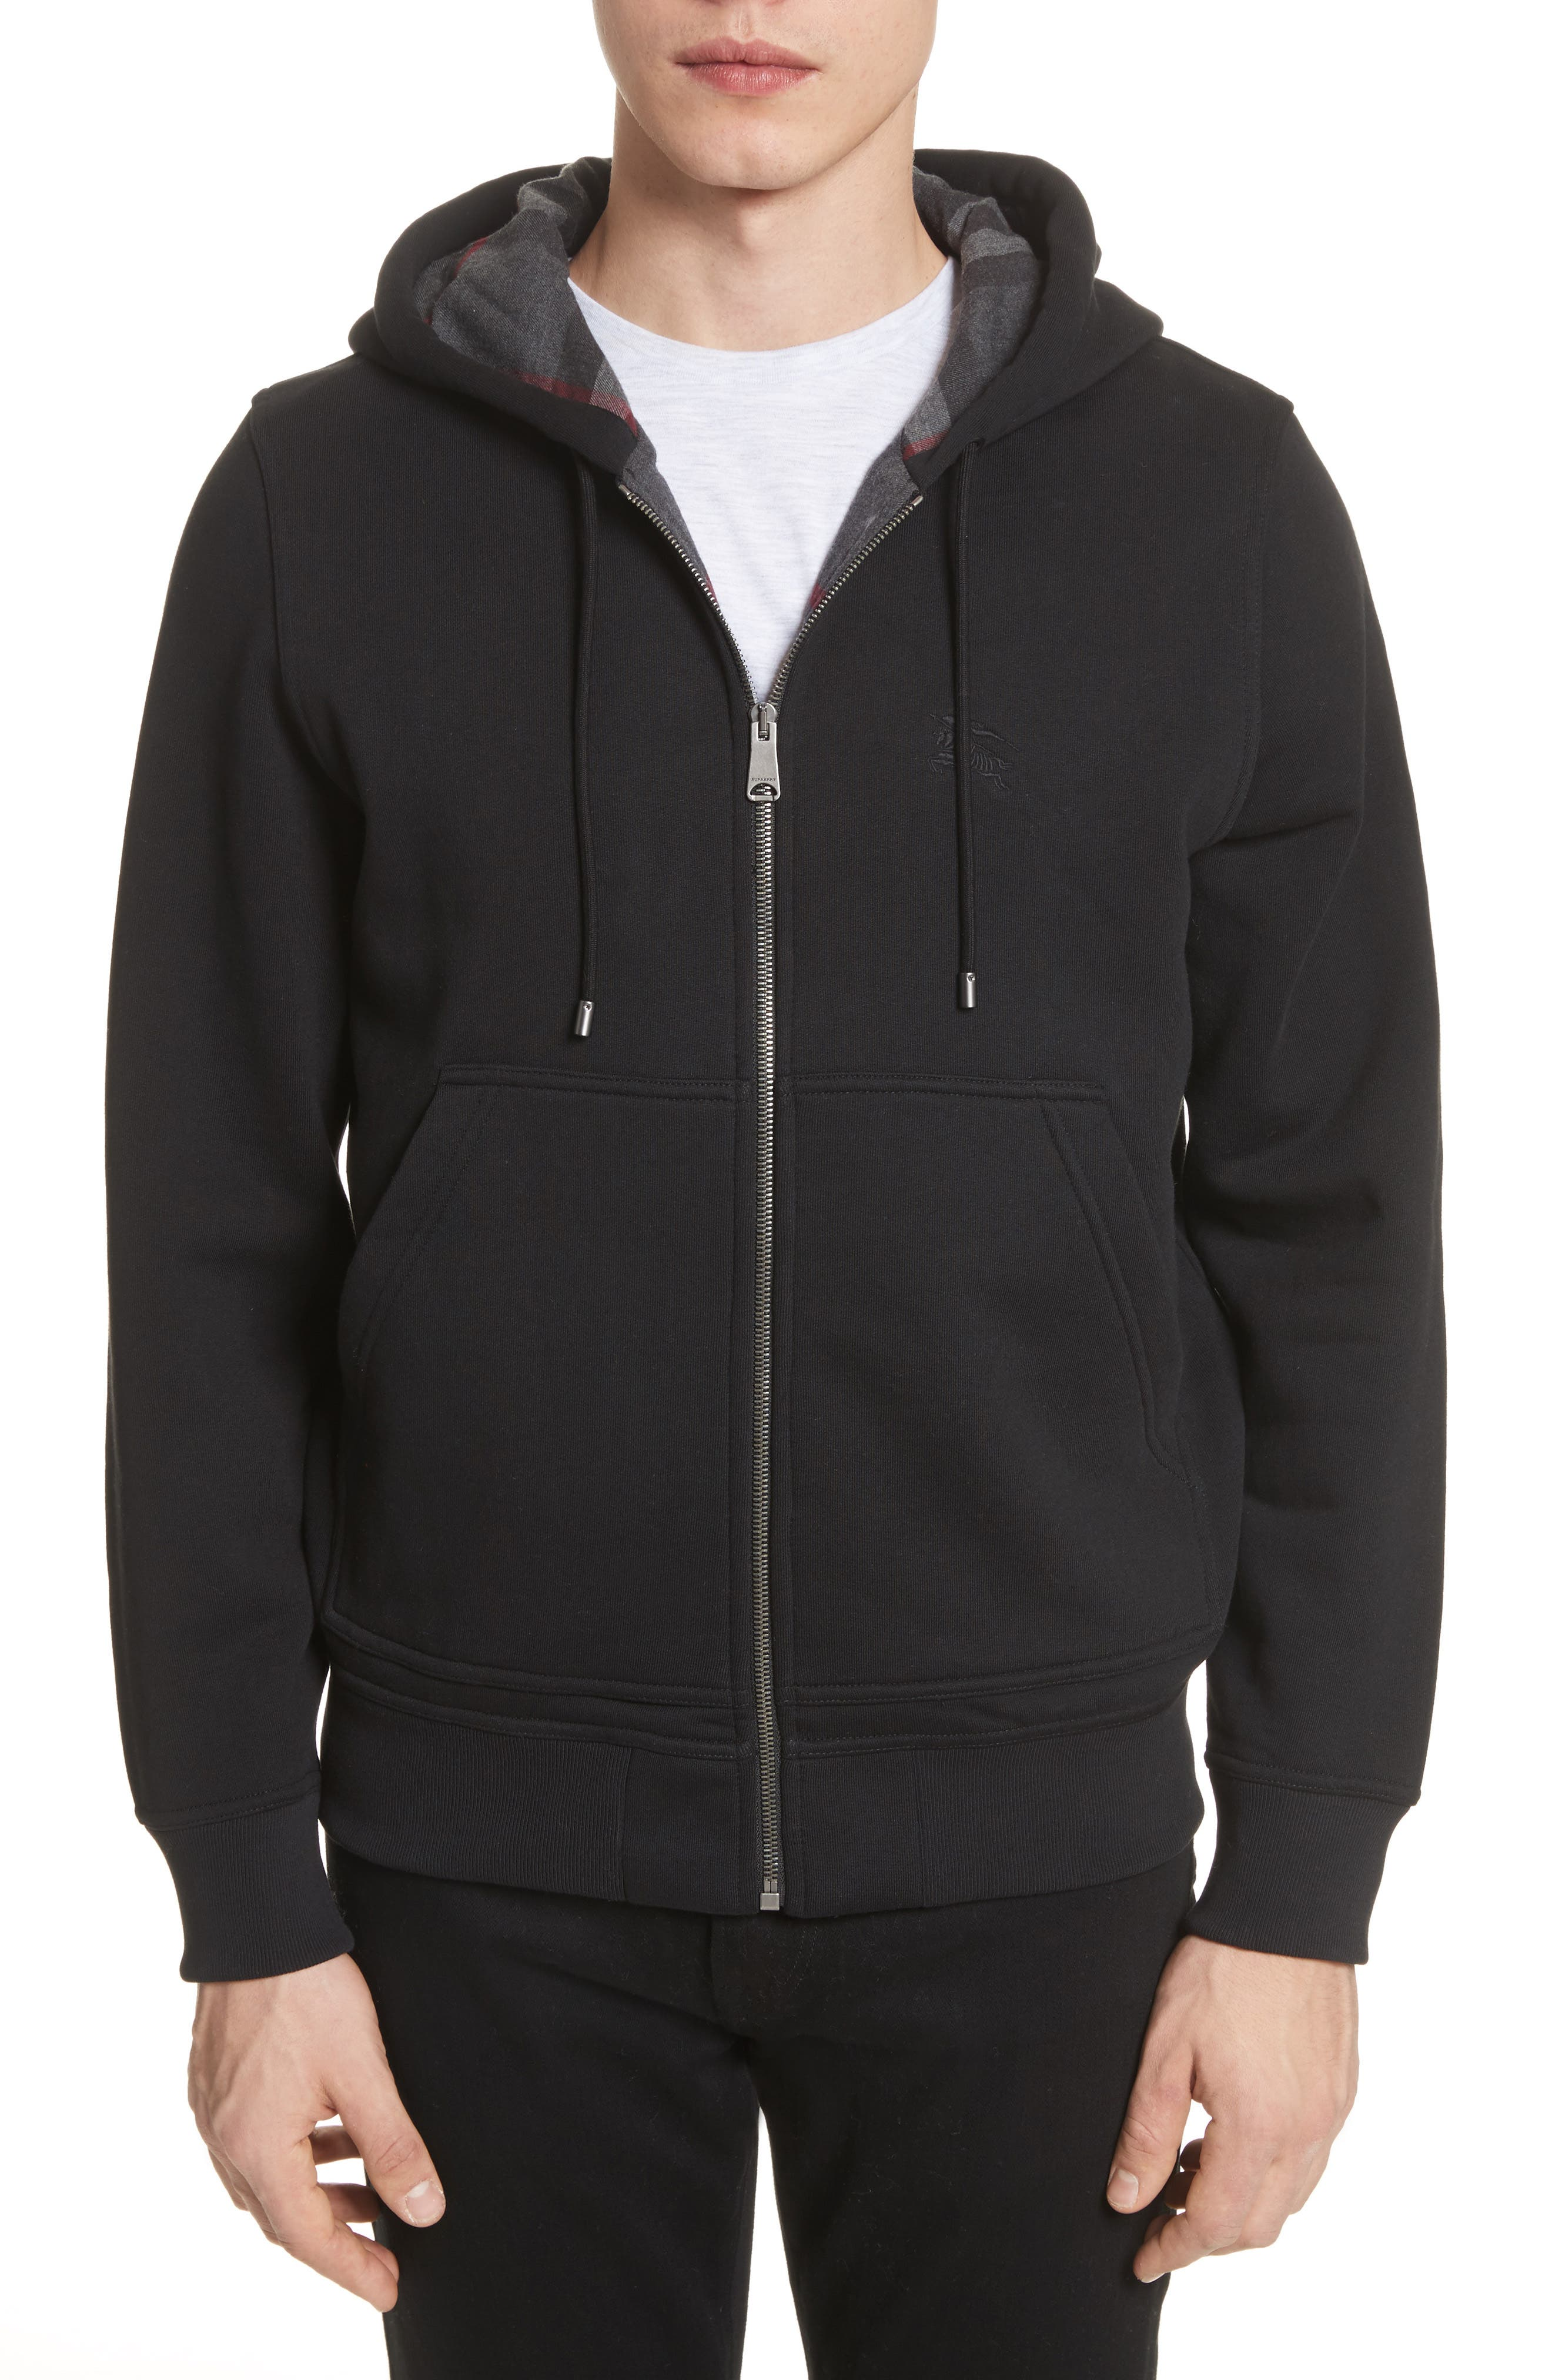 BURBERRY, Fordson Fleece Hoodie, Main thumbnail 1, color, BLACK